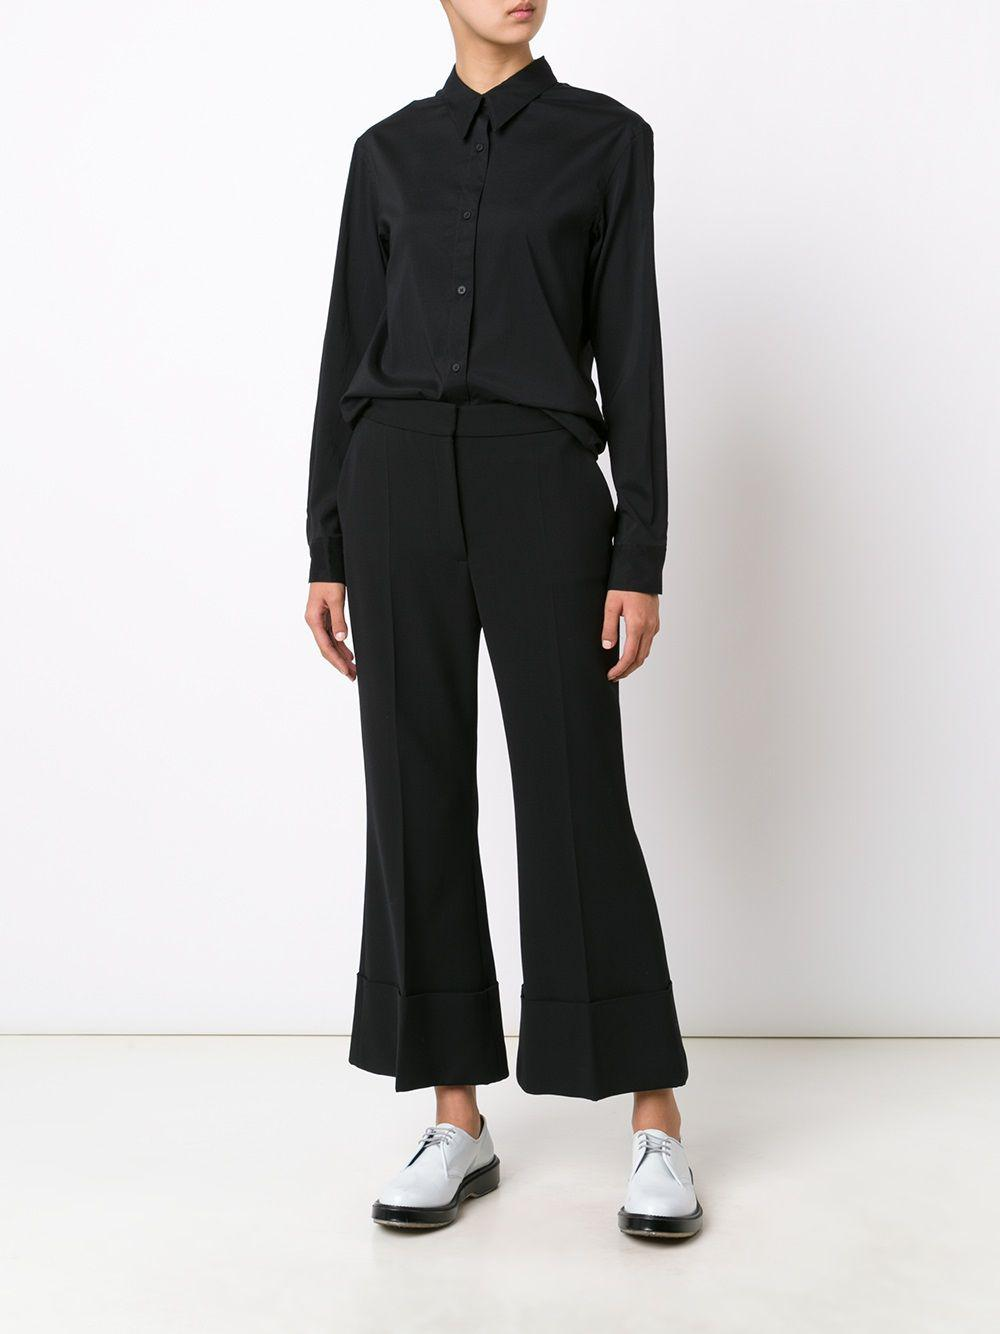 Lyst - Lemaire Pointed Collar Shirt in Black